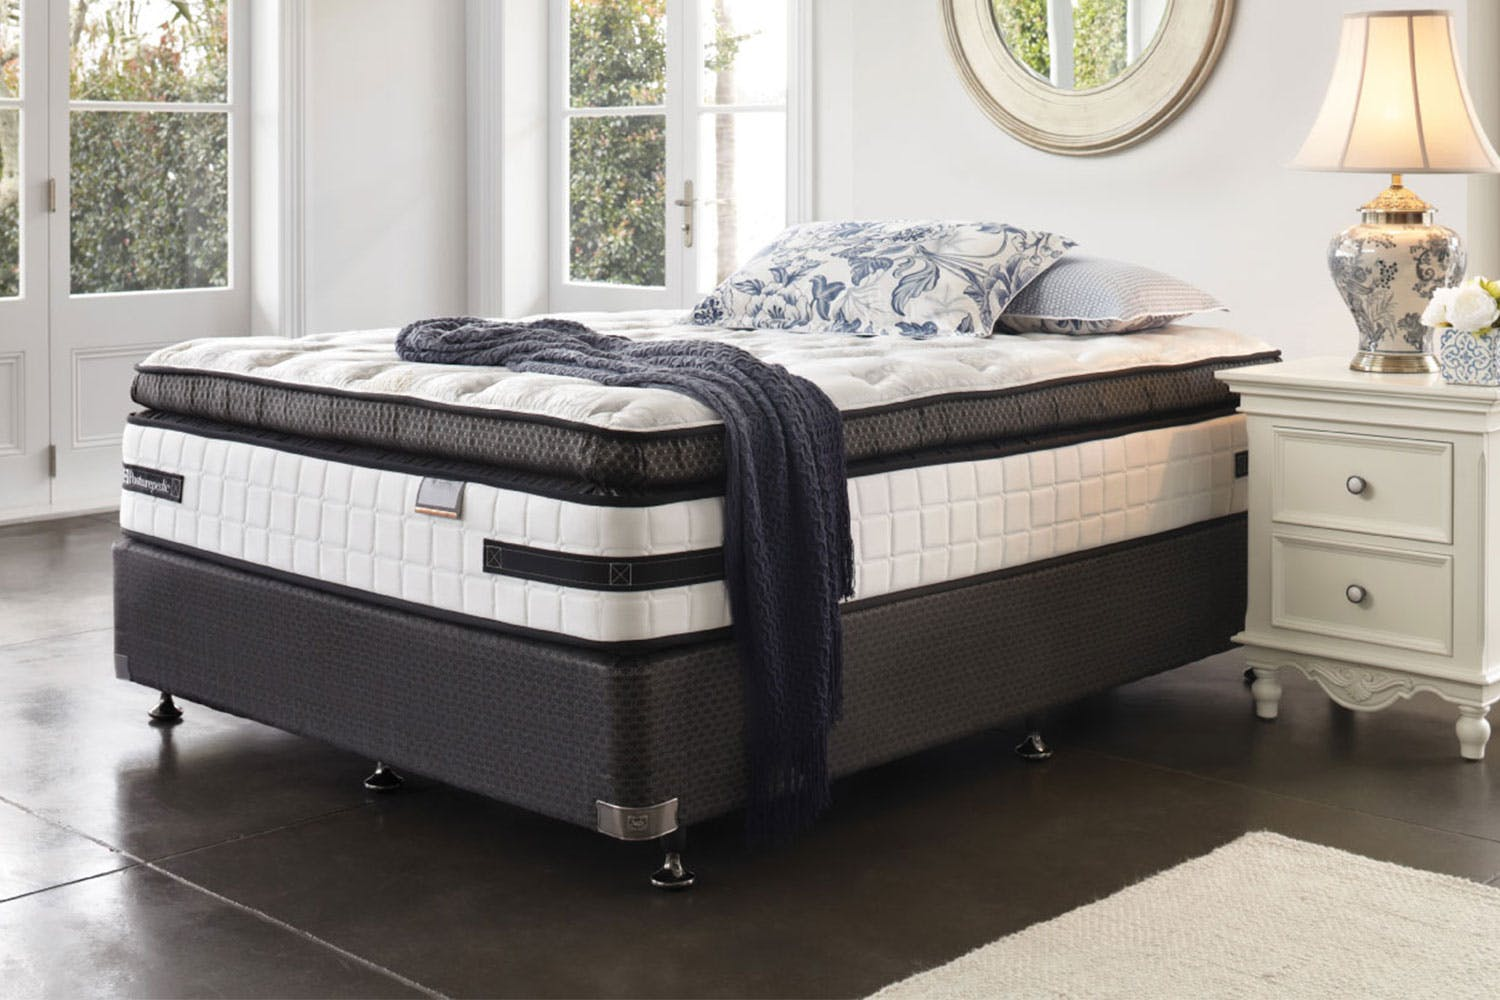 Kensington Ultra Plush Queen Bed By Sealy Posturepedic Harvey Norman New Zealand